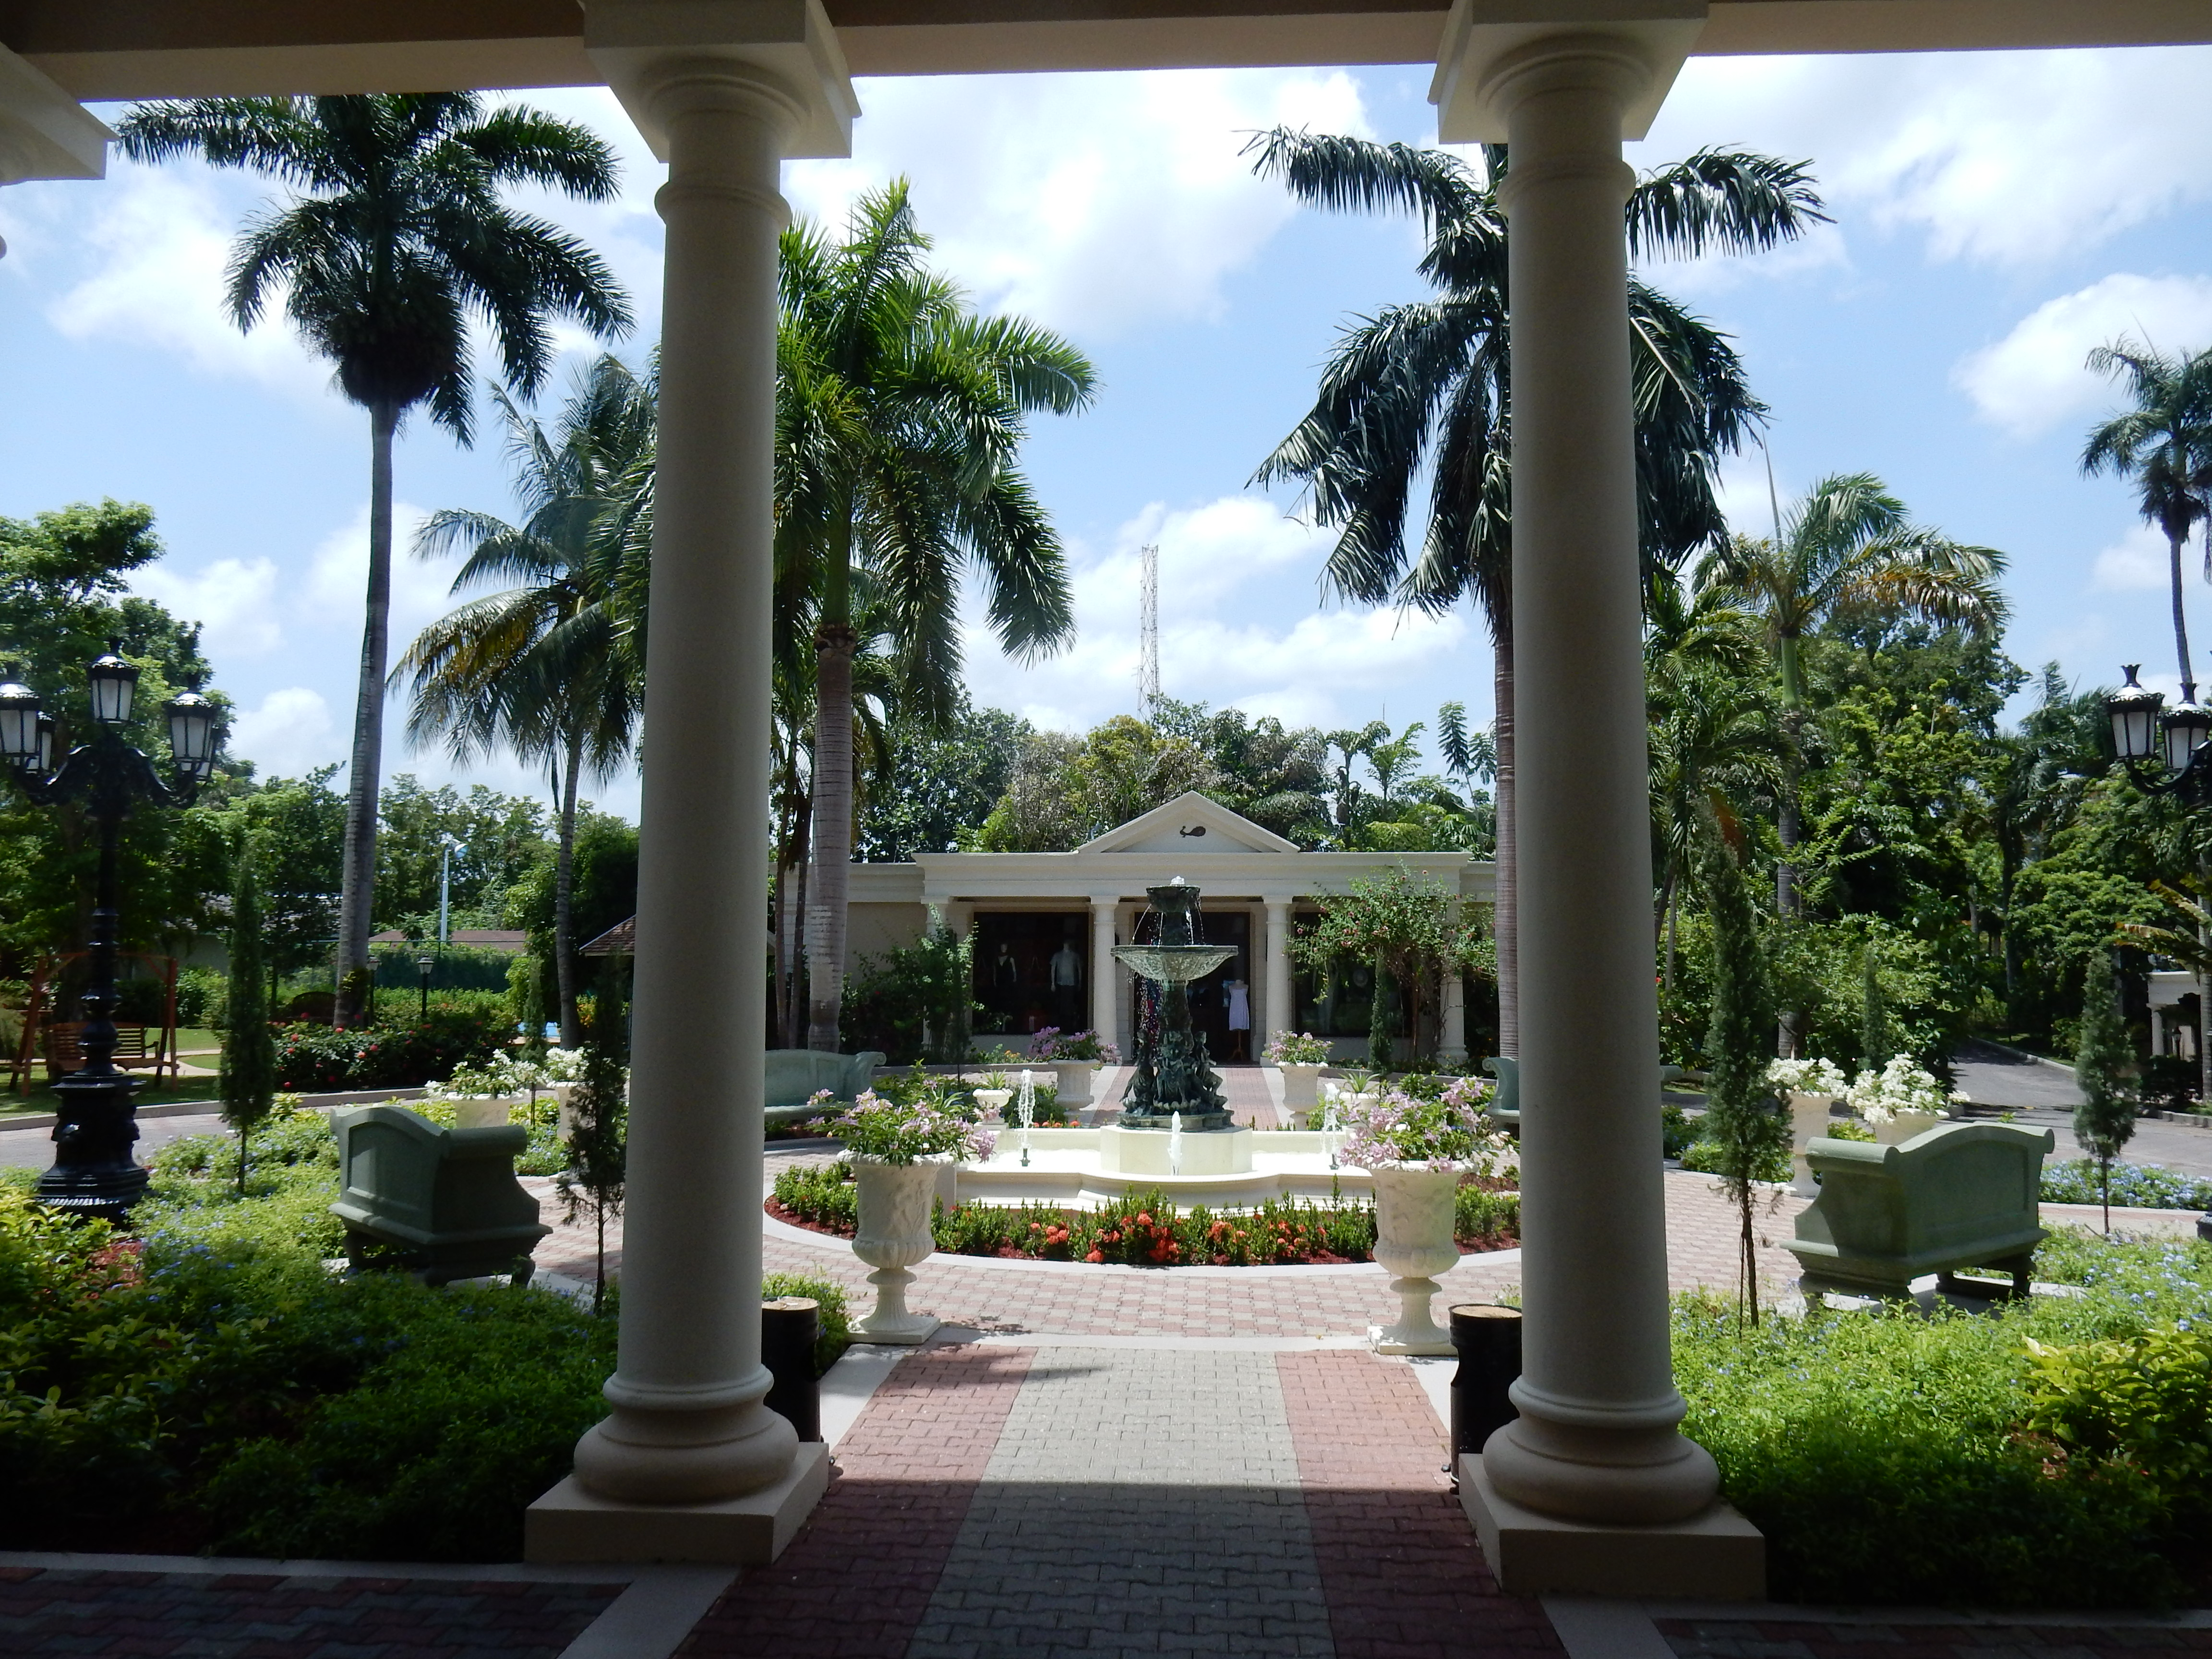 The Royal Pavilion at Sandals Jamaica. Wouldn't this be a great spot for a ceremony?